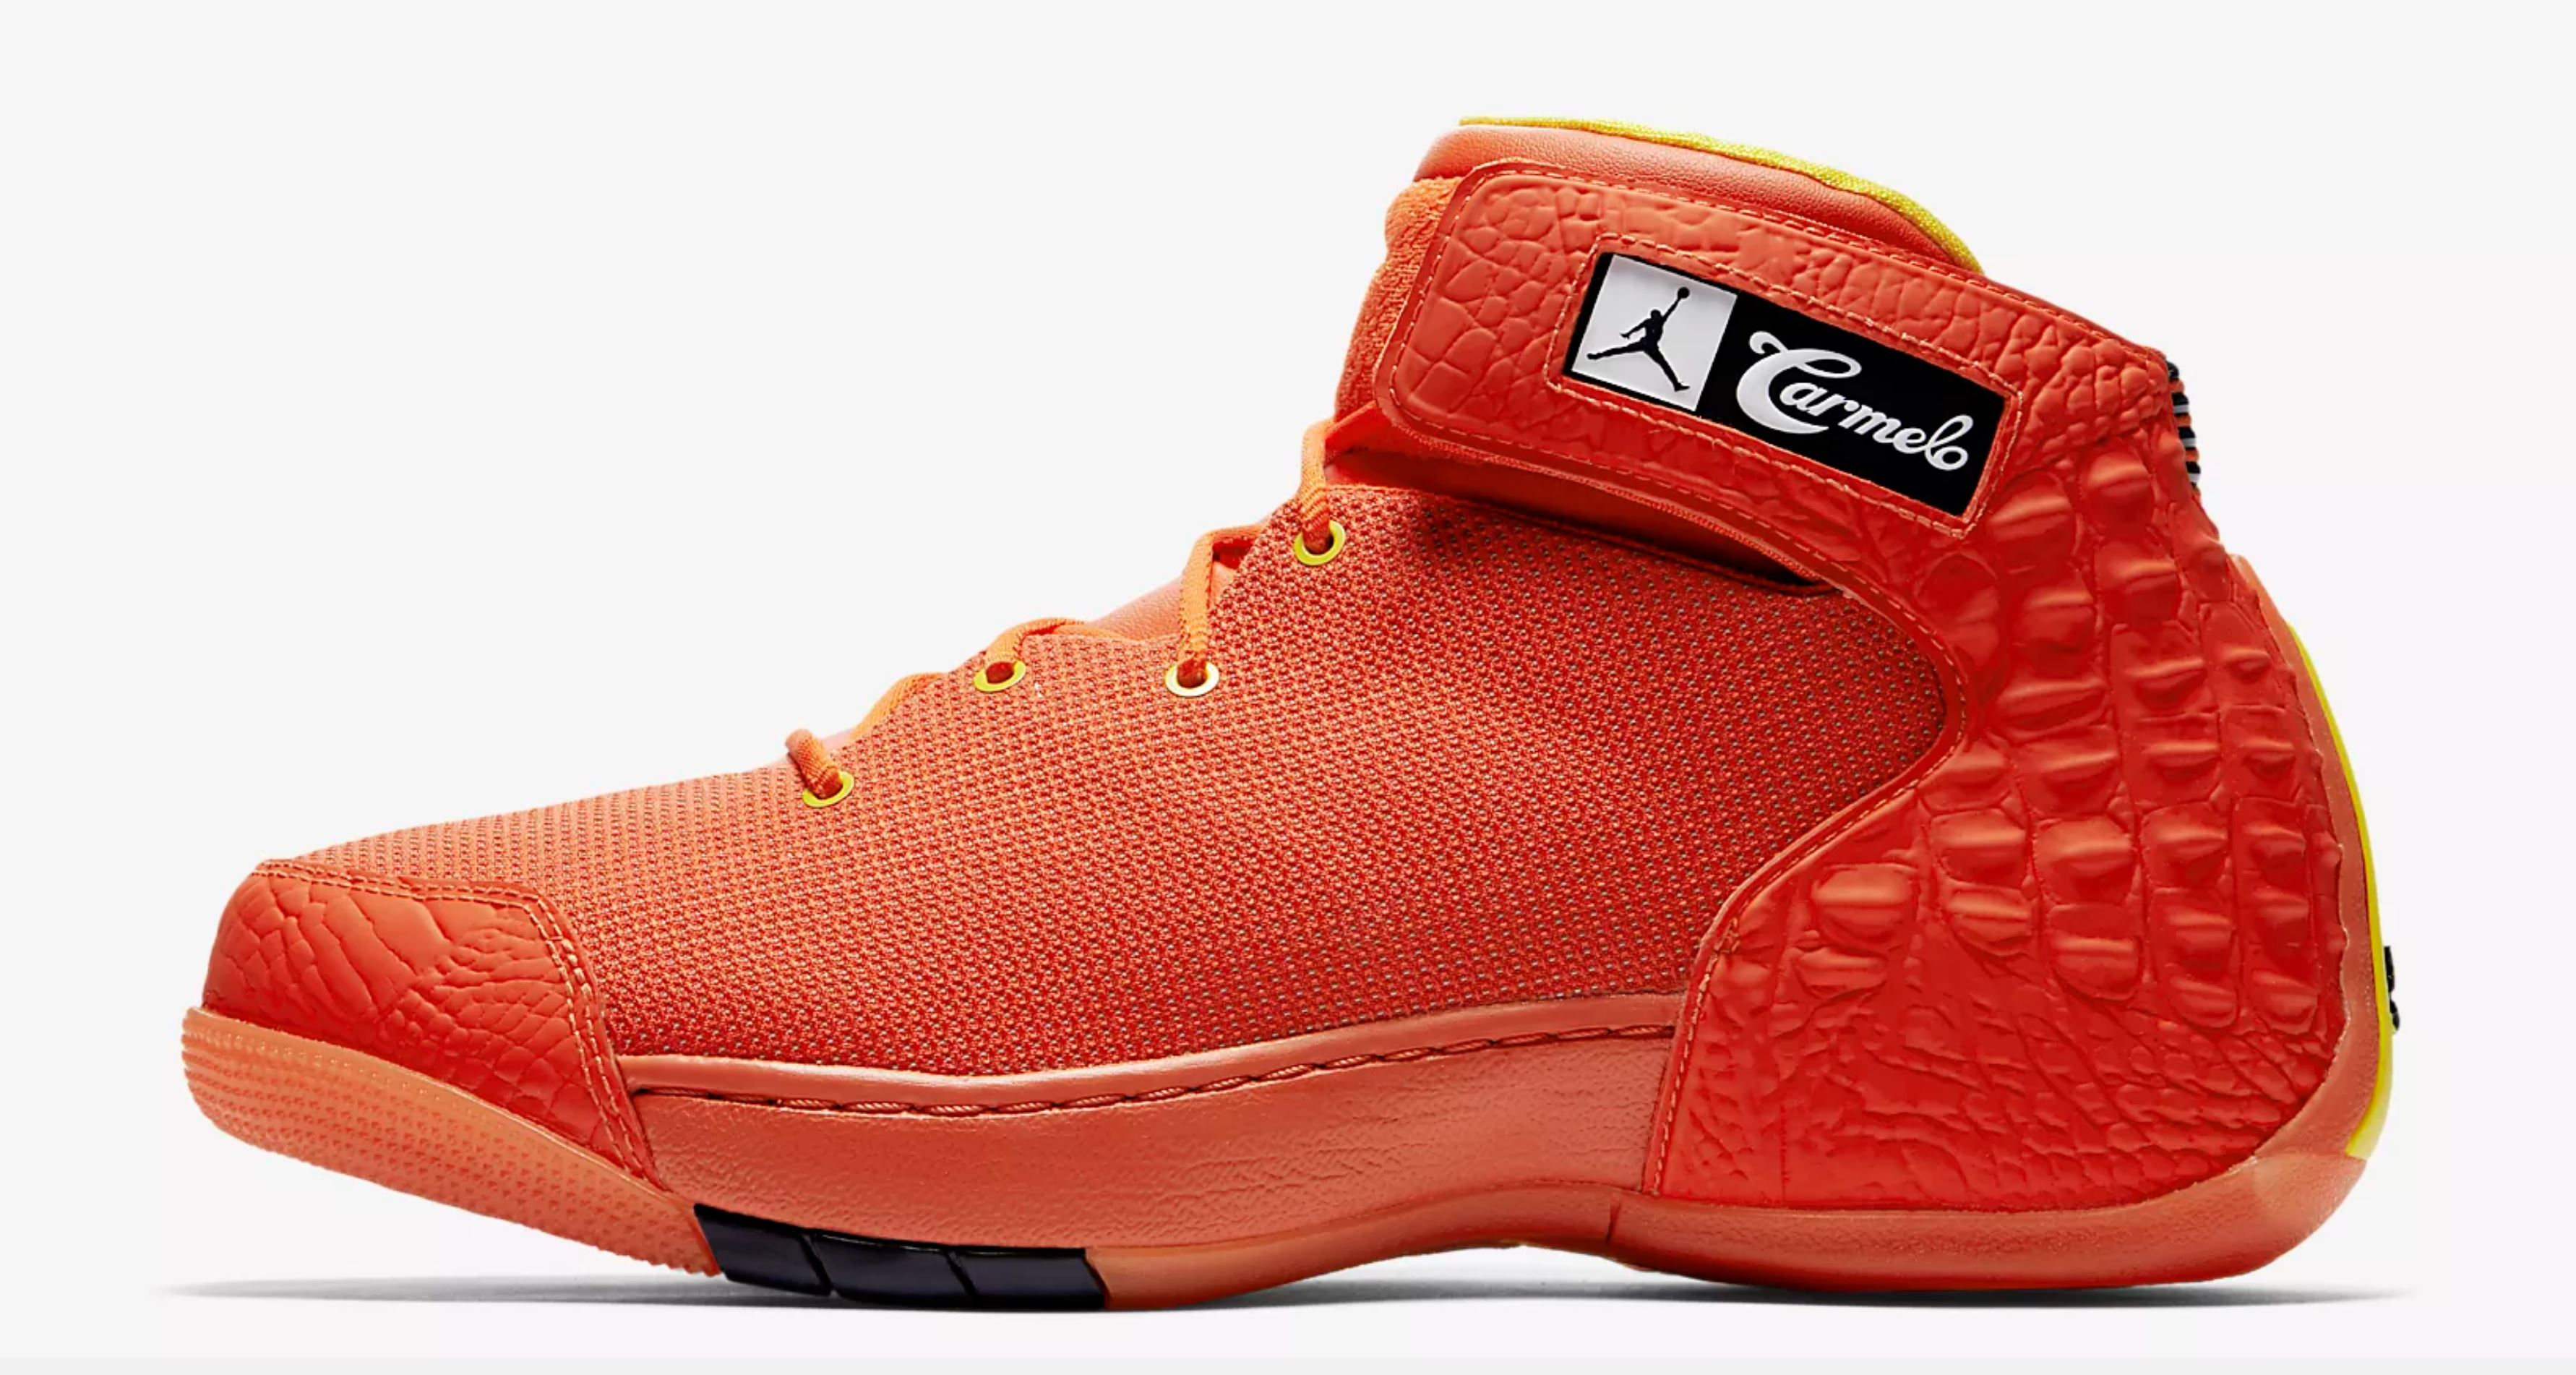 20d70d76330 Carmelo Anthony Archives - WearTesters